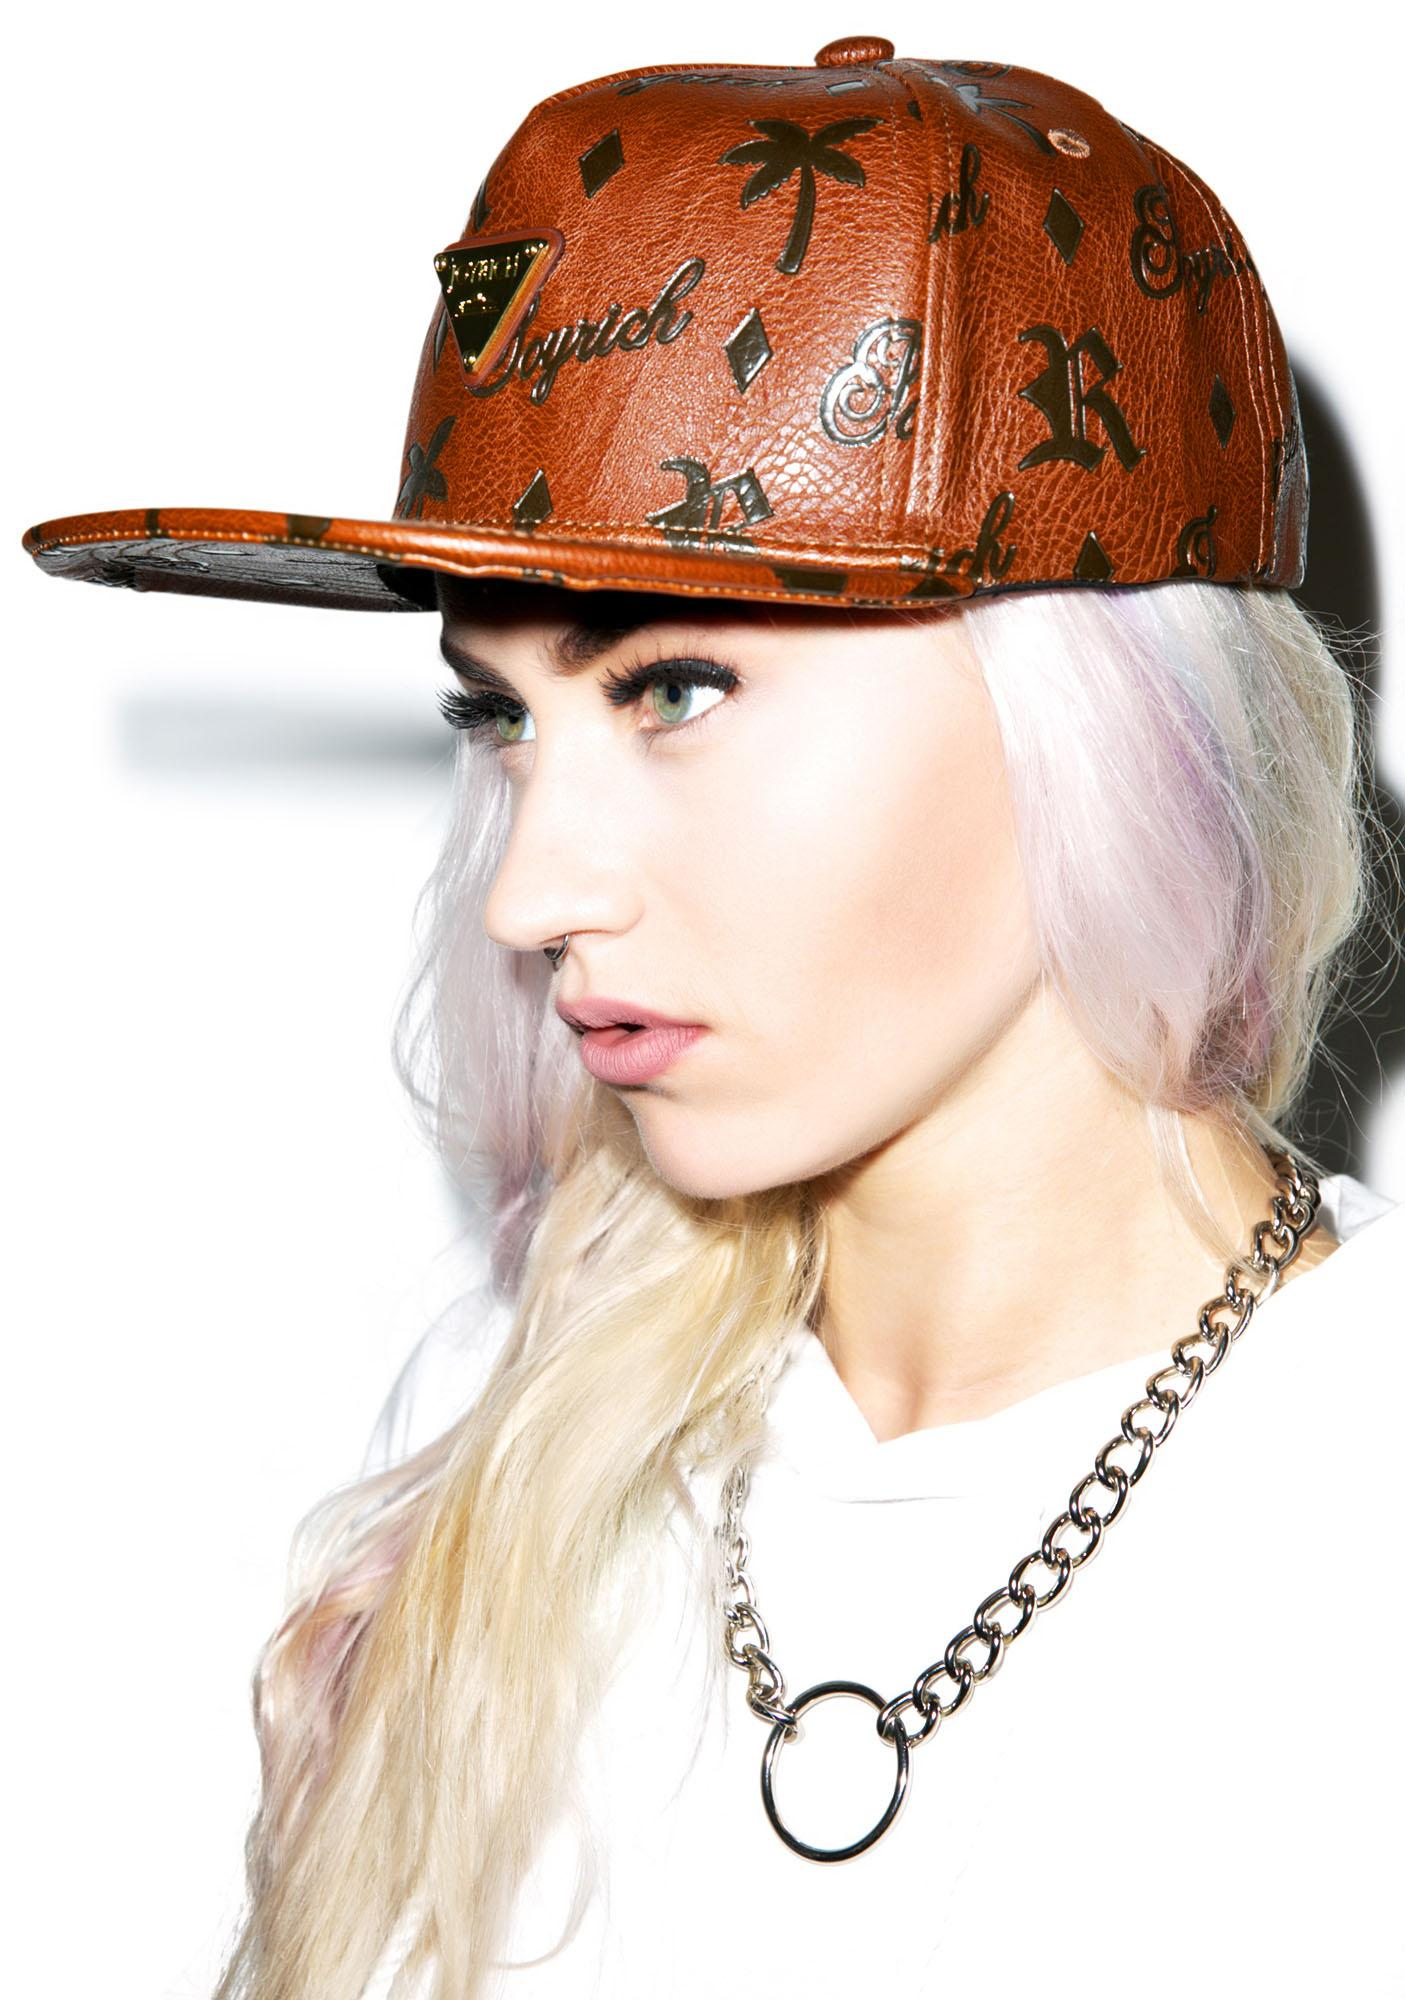 Joyrich Royal Rich Snapback